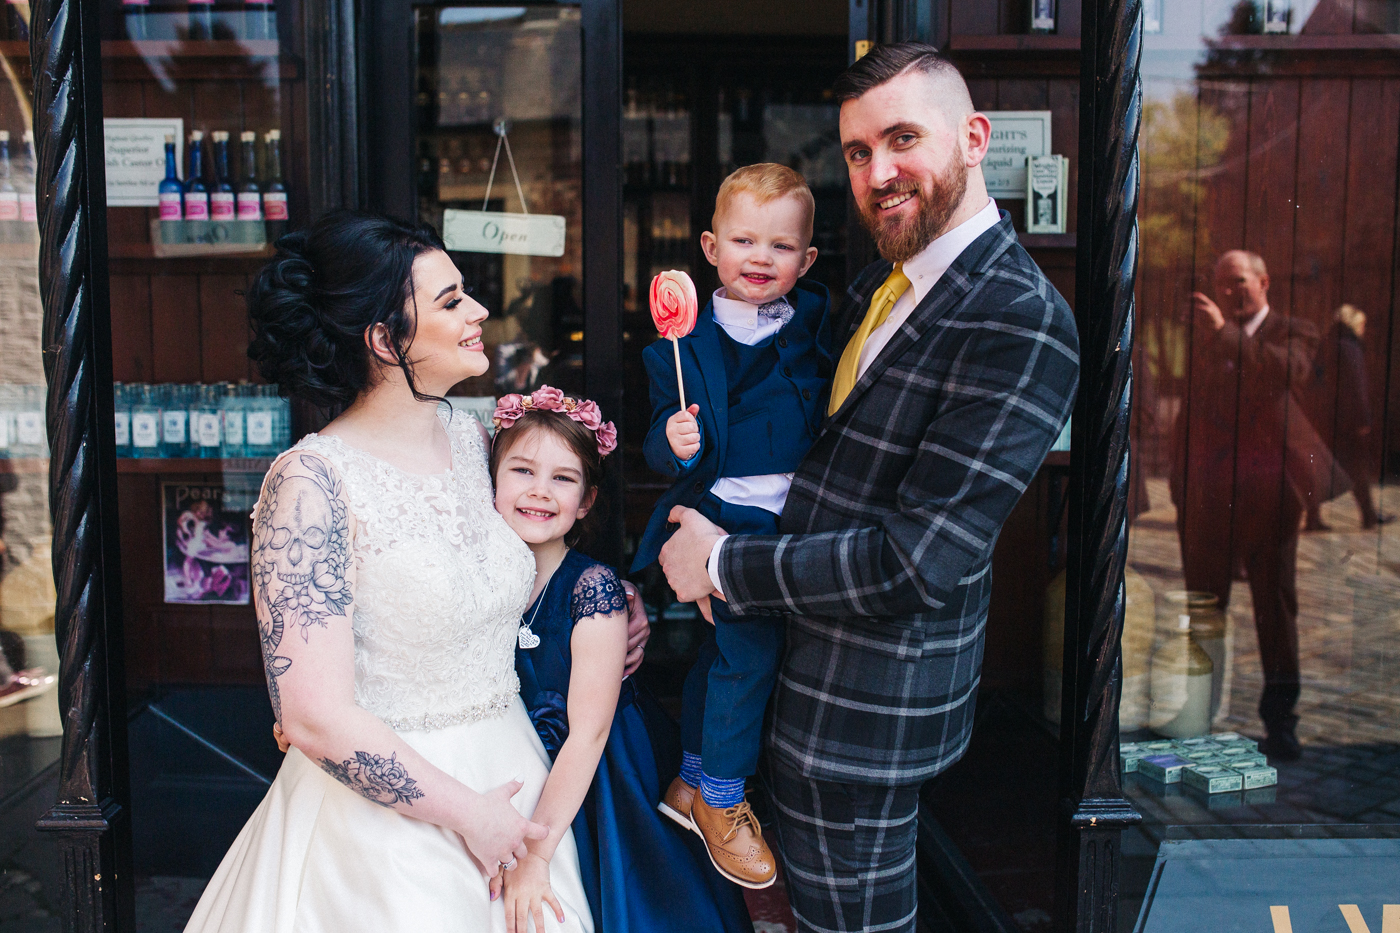 a family photo of the bride and groom with their two cgildren. preston park museum wedding stockton teesside middlesbrough wedding photographer